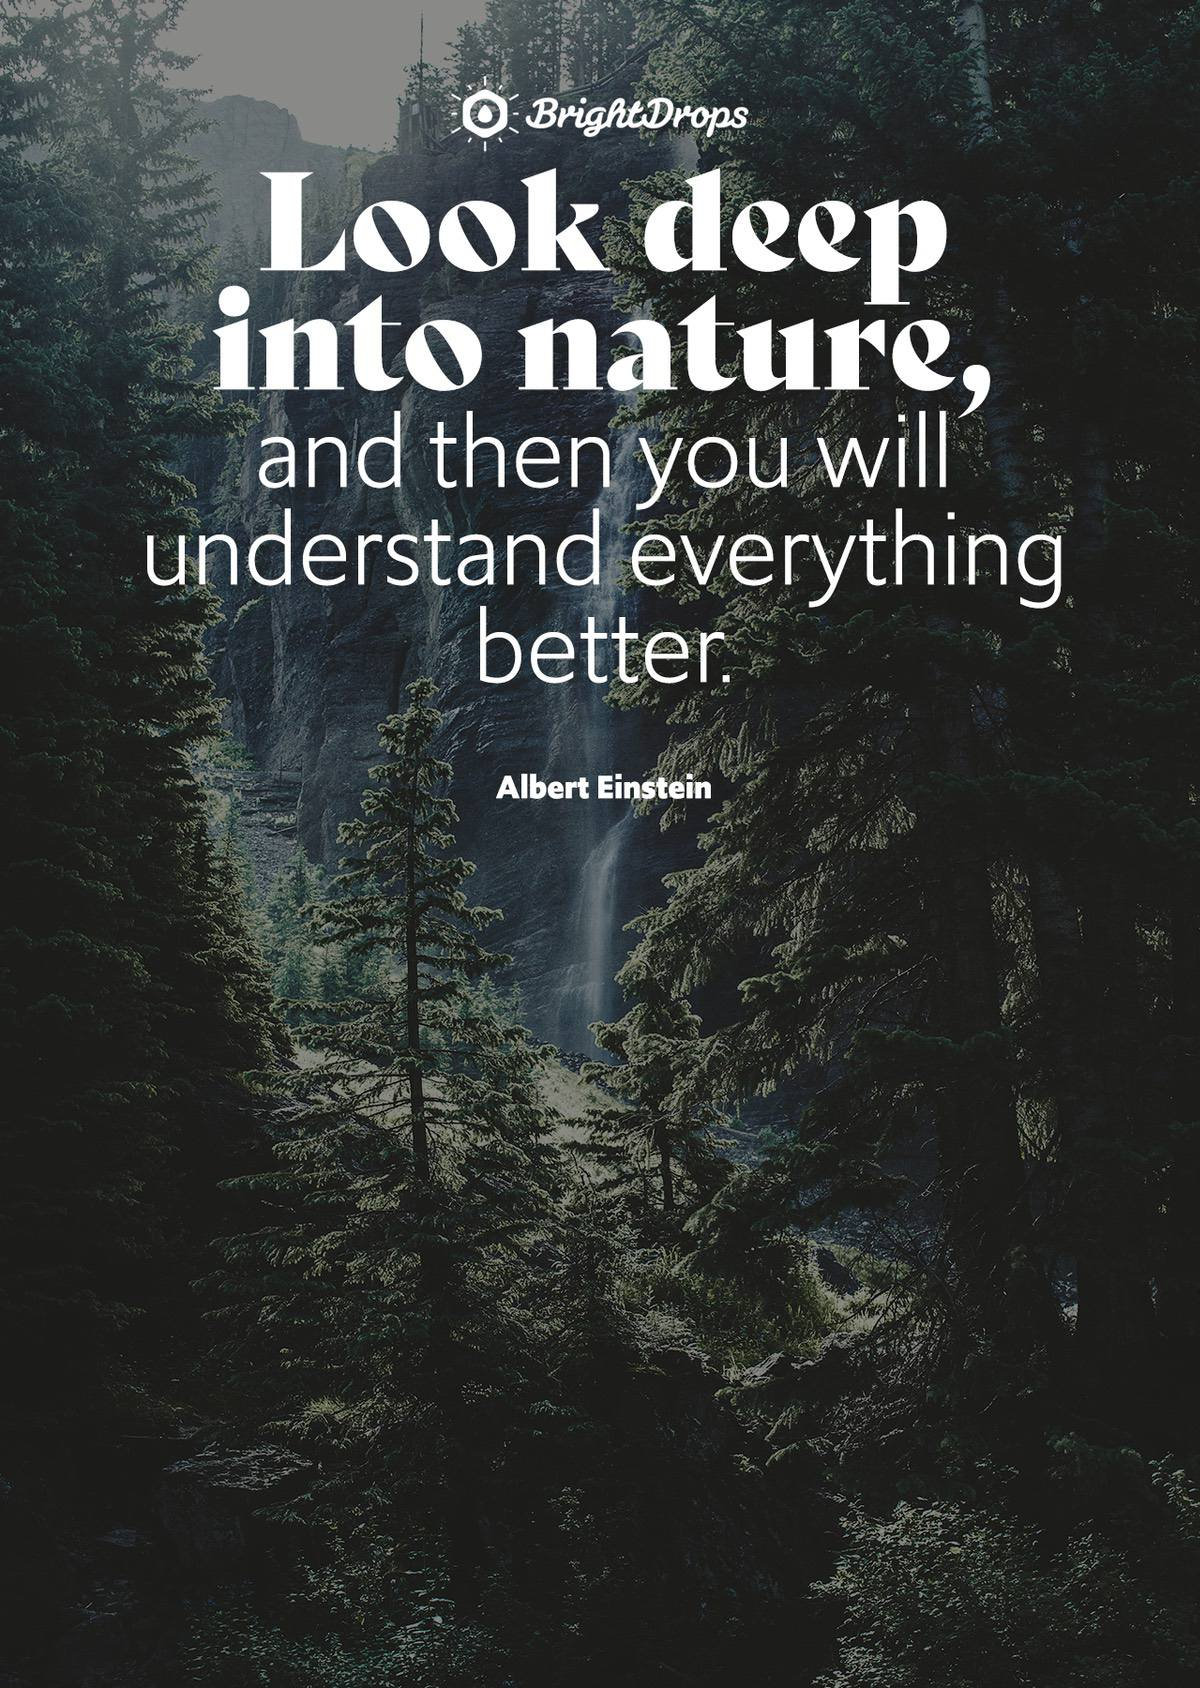 9 Inspirational Nature Quotes on Life and Its Natural Beauty